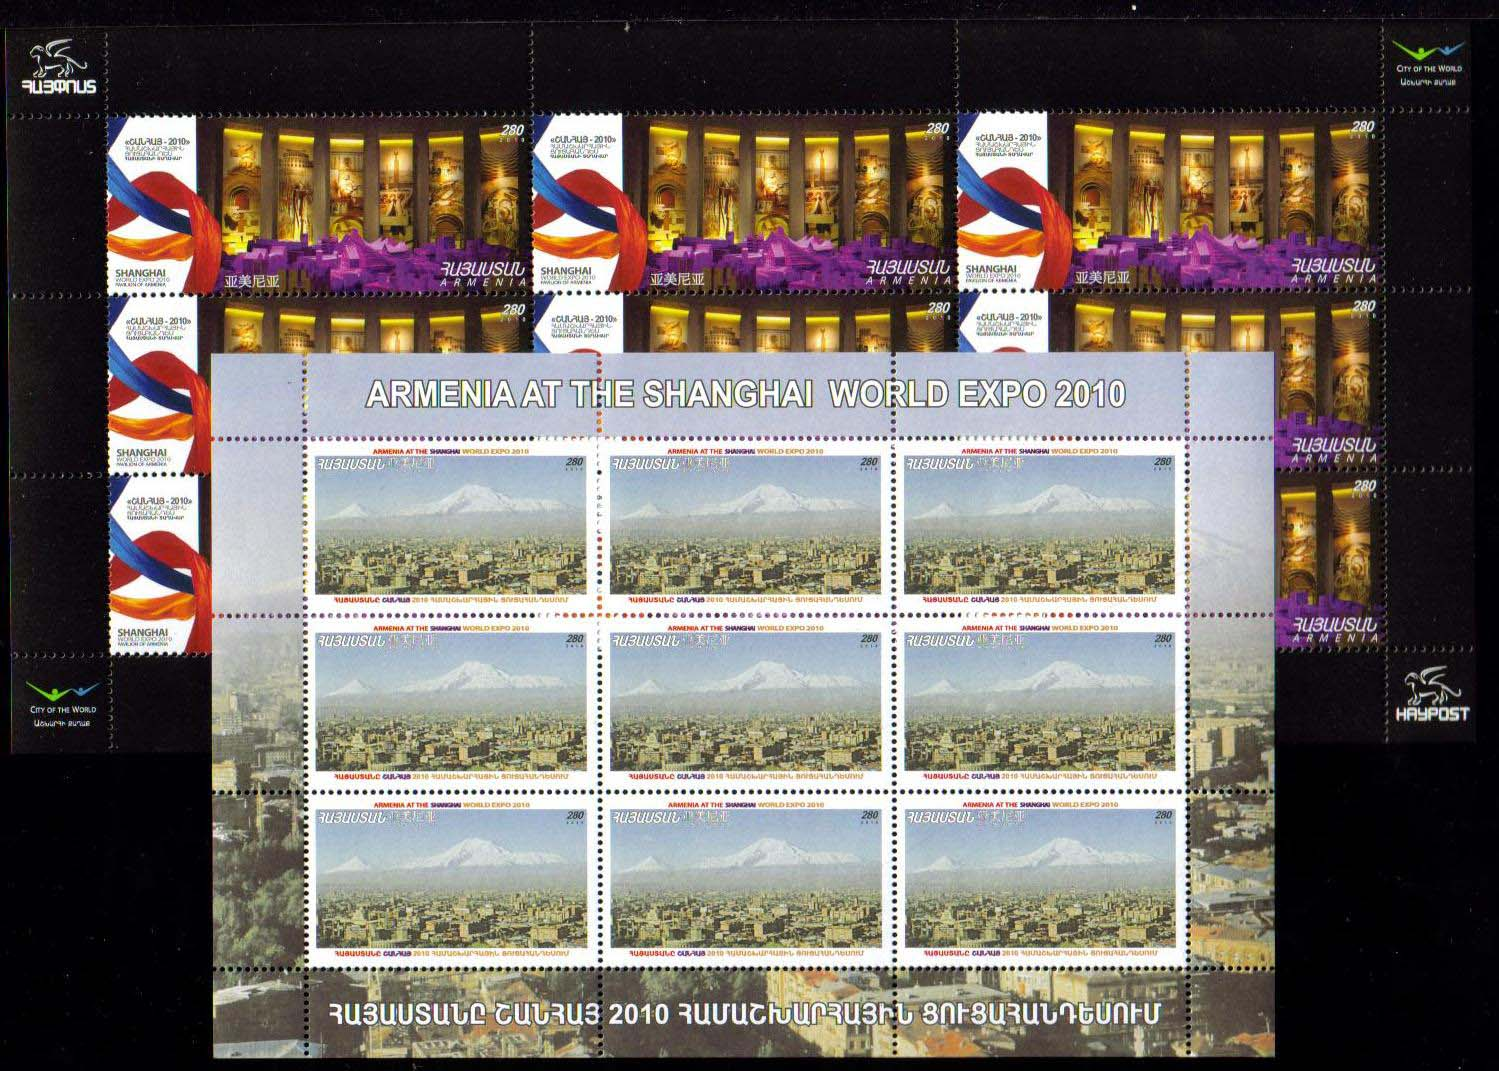 "<font 4-496s>496-7, Shanghai World Expo, Armenia's Pavilion.  Scott #845-846 <br>Sheetlets of 9 <font color=blue><i>NO official FDC issued for this set</i></font><br>Date of Issue: August 23, 2010<br> <a href=""/images/ArmenianStamps-496-497-Sheet.jpg"">   <font color=green><b>View the image</b></a></font>"